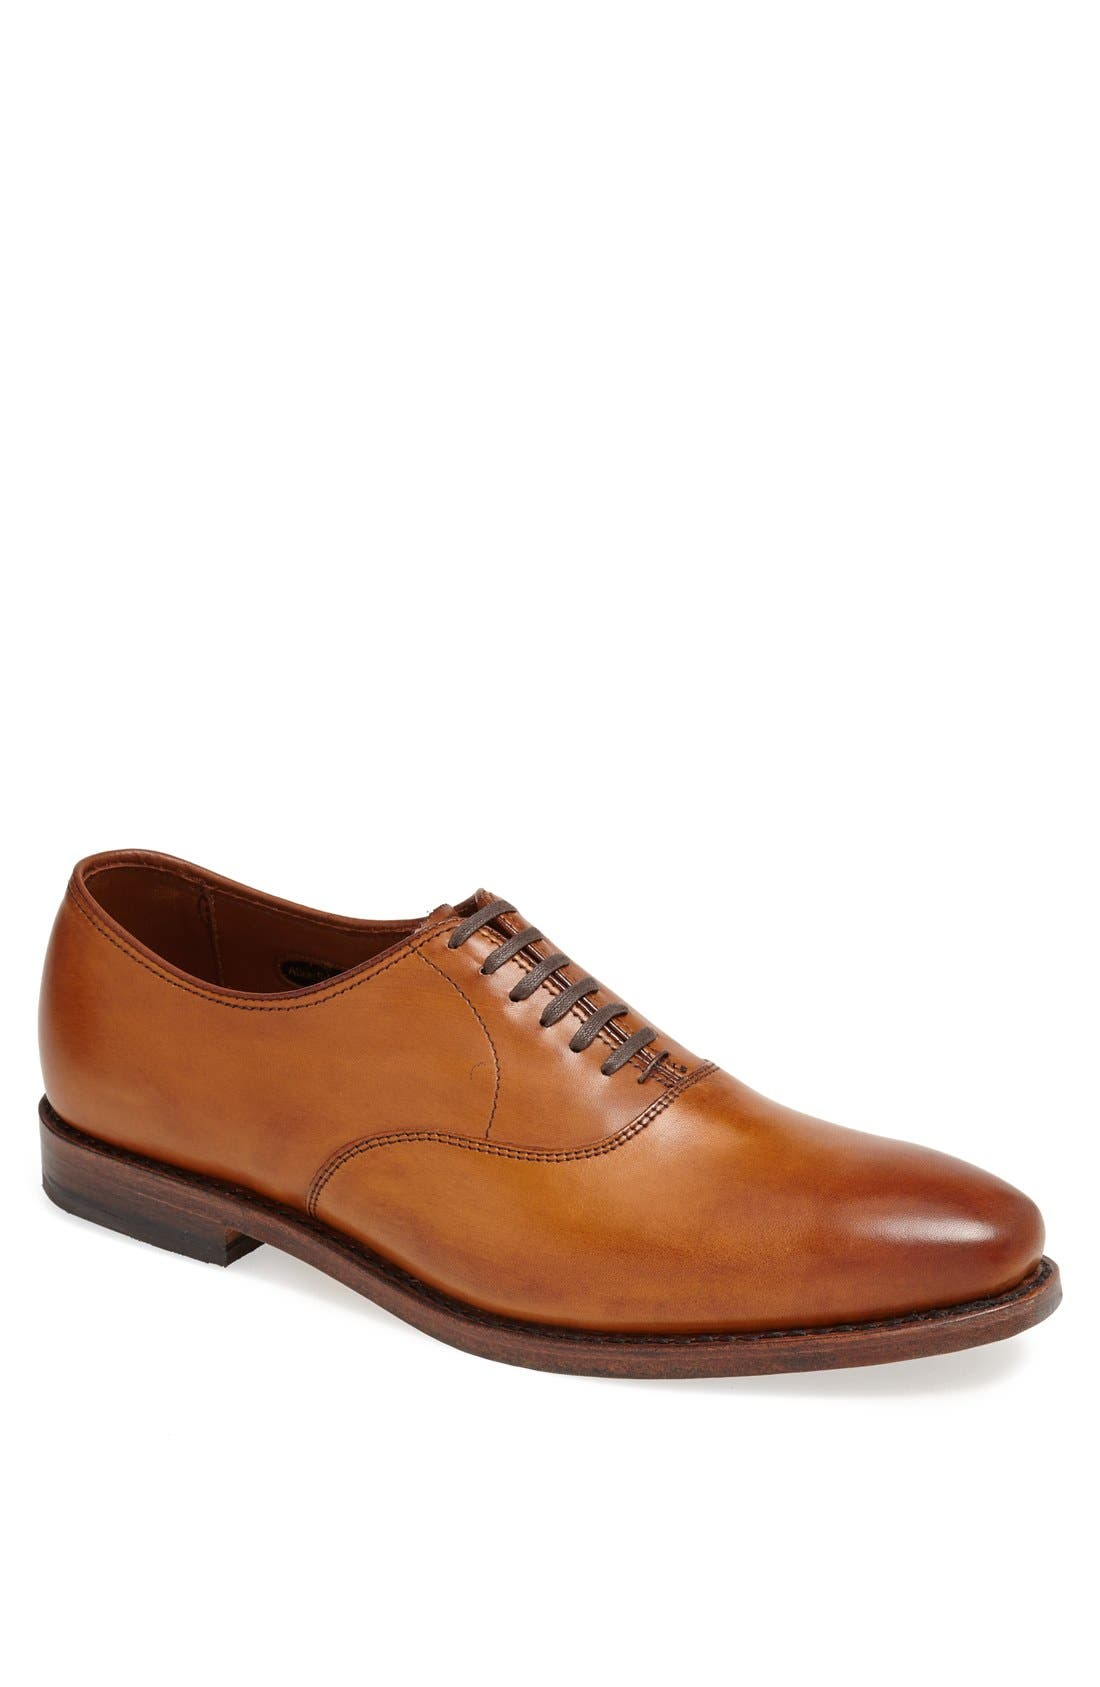 Carlyle Plain Toe Oxford,                         Main,                         color, WALNUT LEATHER